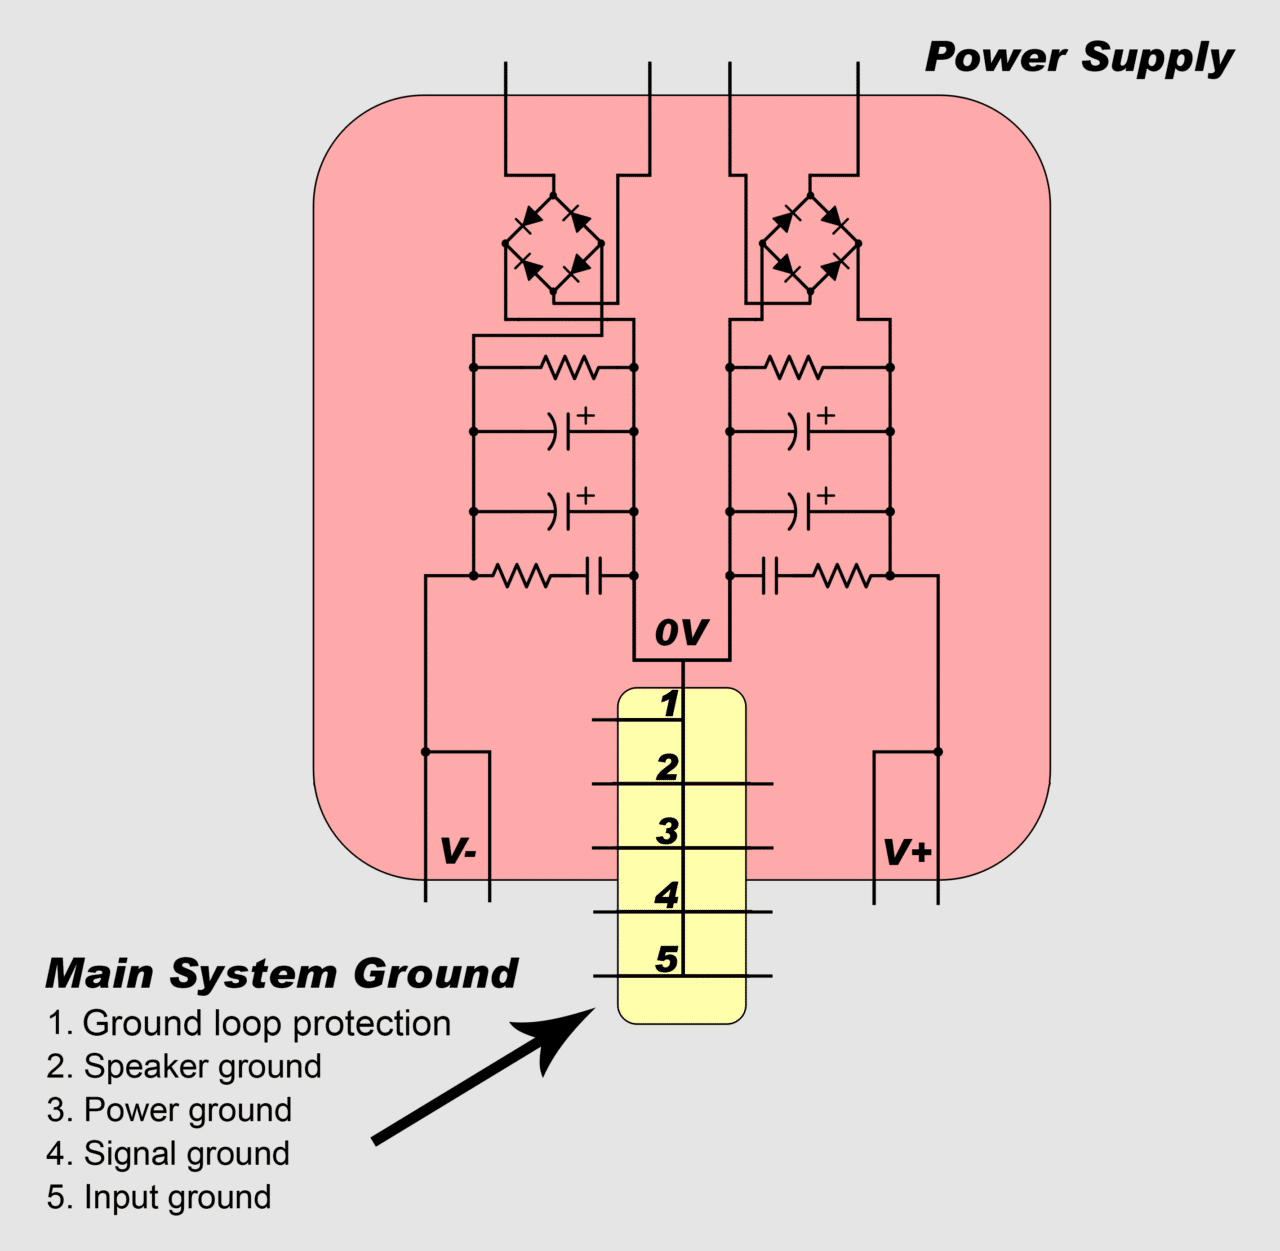 A Complete Guide To Design And Build Hi Fi Lm3886 Amplifier Above Short Circuit Ground The Individual Networks Are Connected Main System So That Higher Current Grounds Closer Reservoir Capacitors